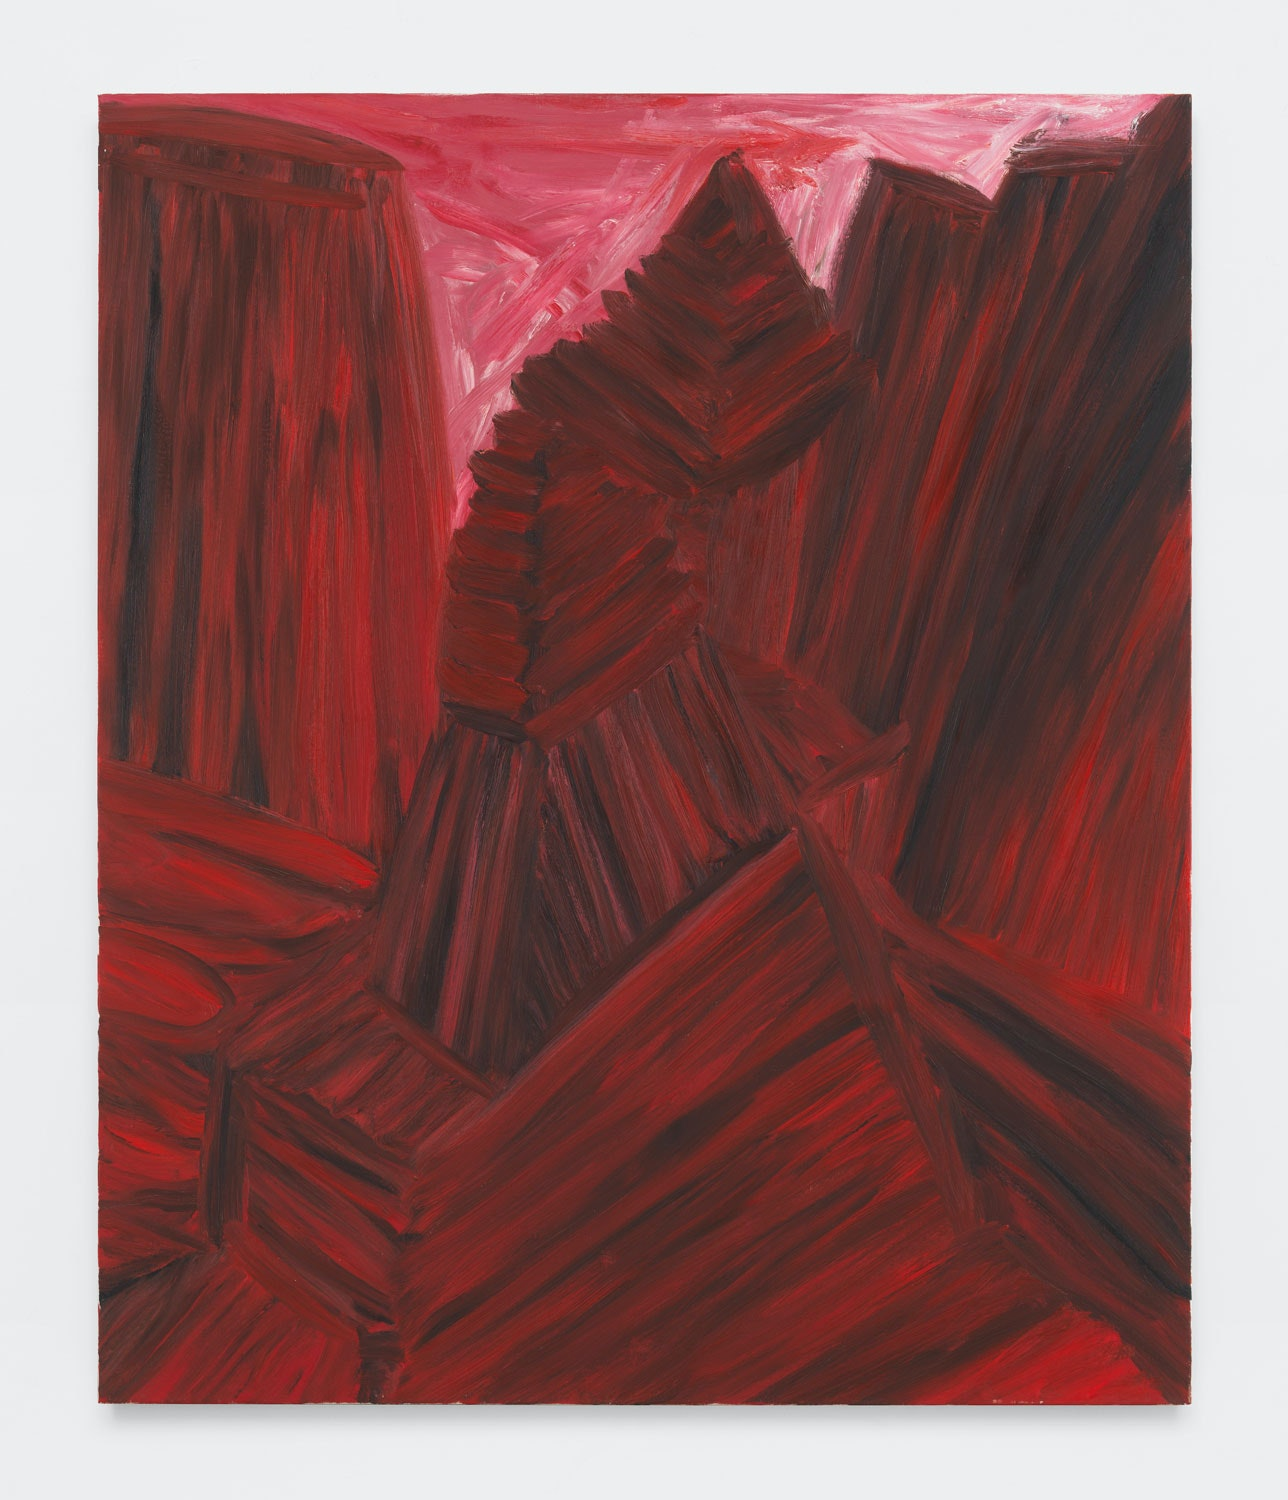 Martha Diamond, <em>Red Cityscape</em>, 1989. Oil on linen, 72 x 60 inches. Courtesy Magenta Plains.